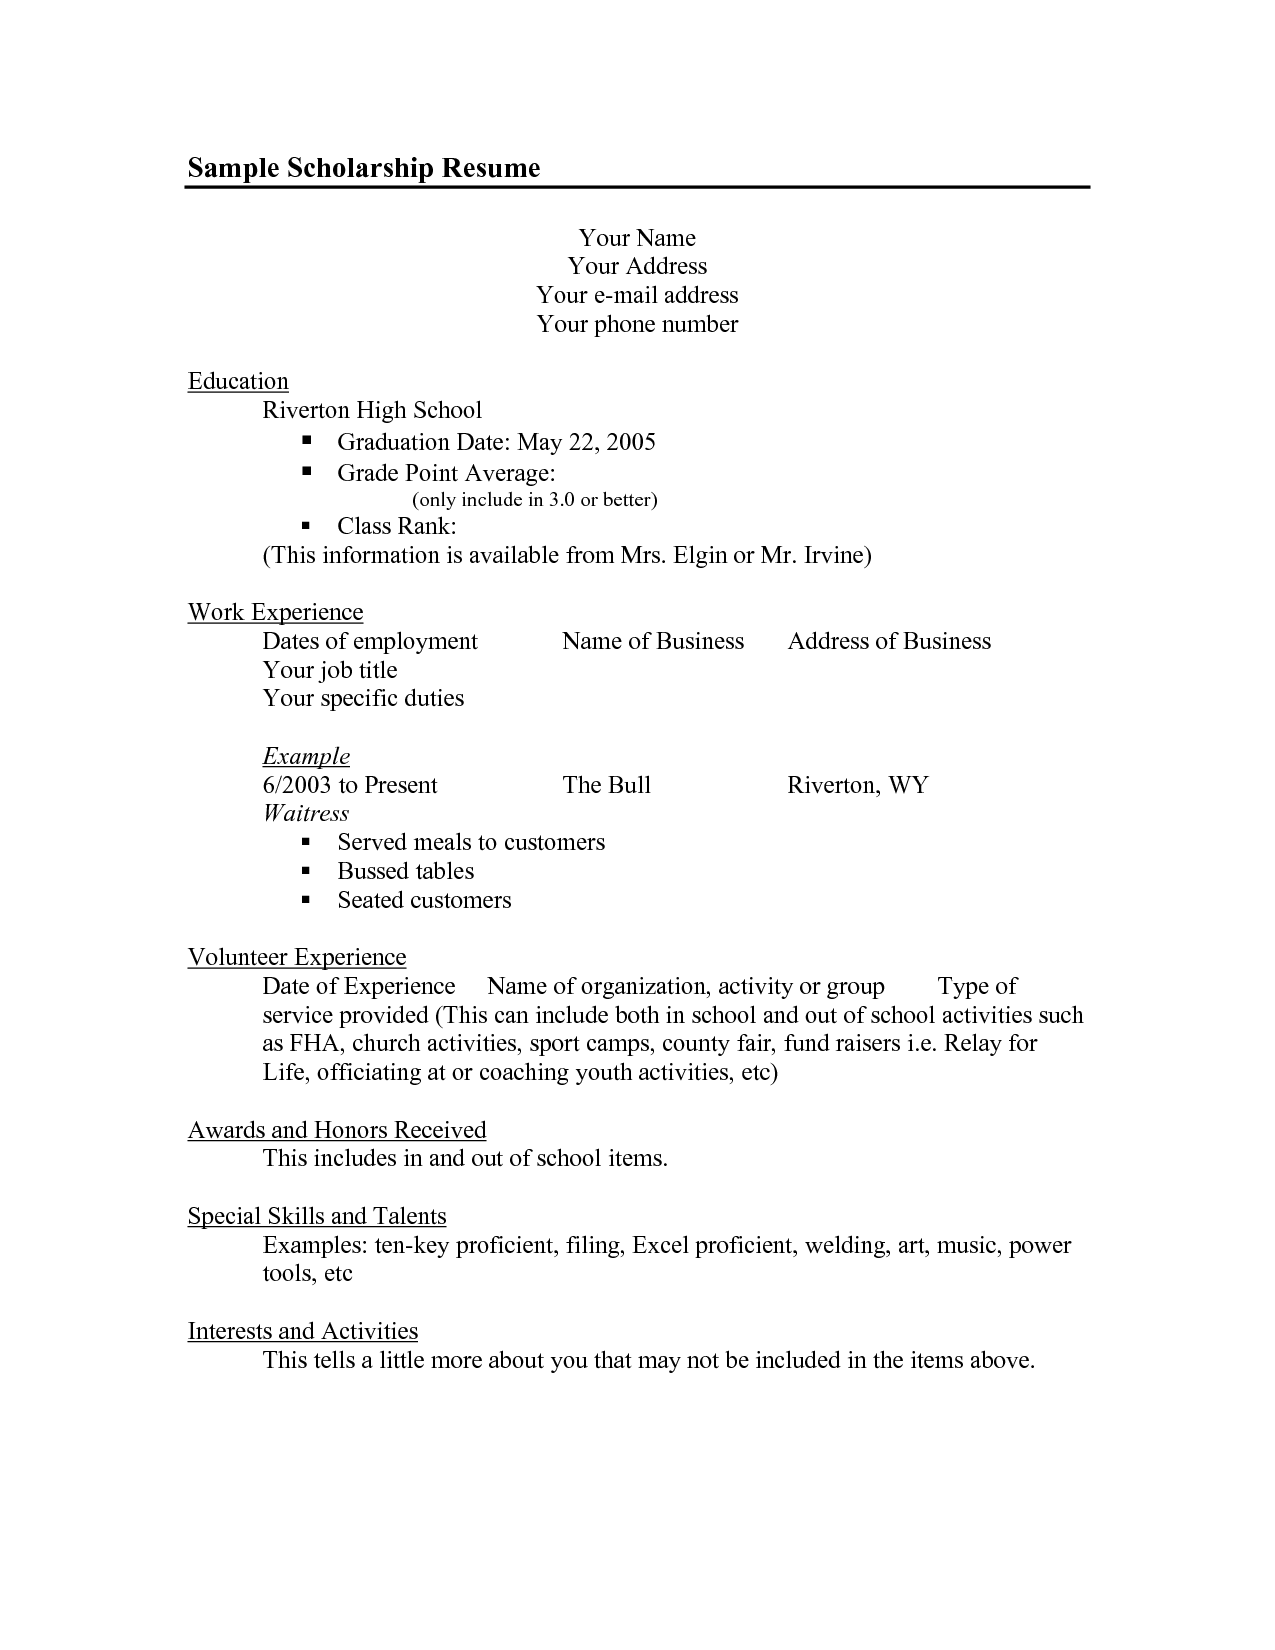 Scholarship resume template fsgcrcom mvxhldbr kim 39 s for Sample resume for high school students applying for scholarships